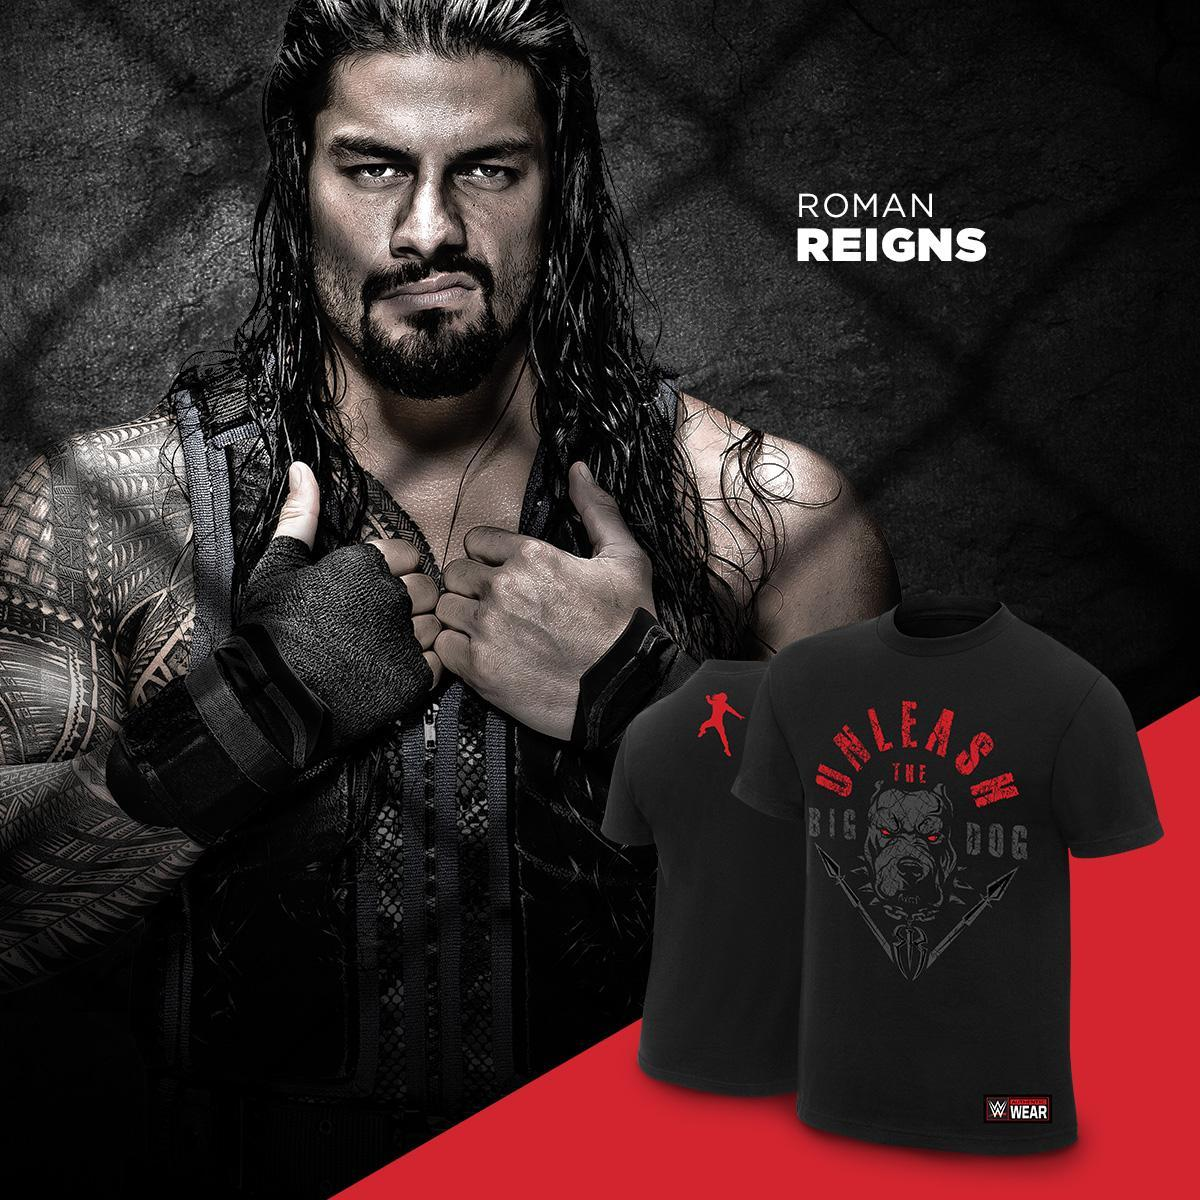 Unleash the #BigDog! New @WWERomanReigns tee now available at #WWEShop. #WWE #RomanReigns bit.ly/2kFwgJq